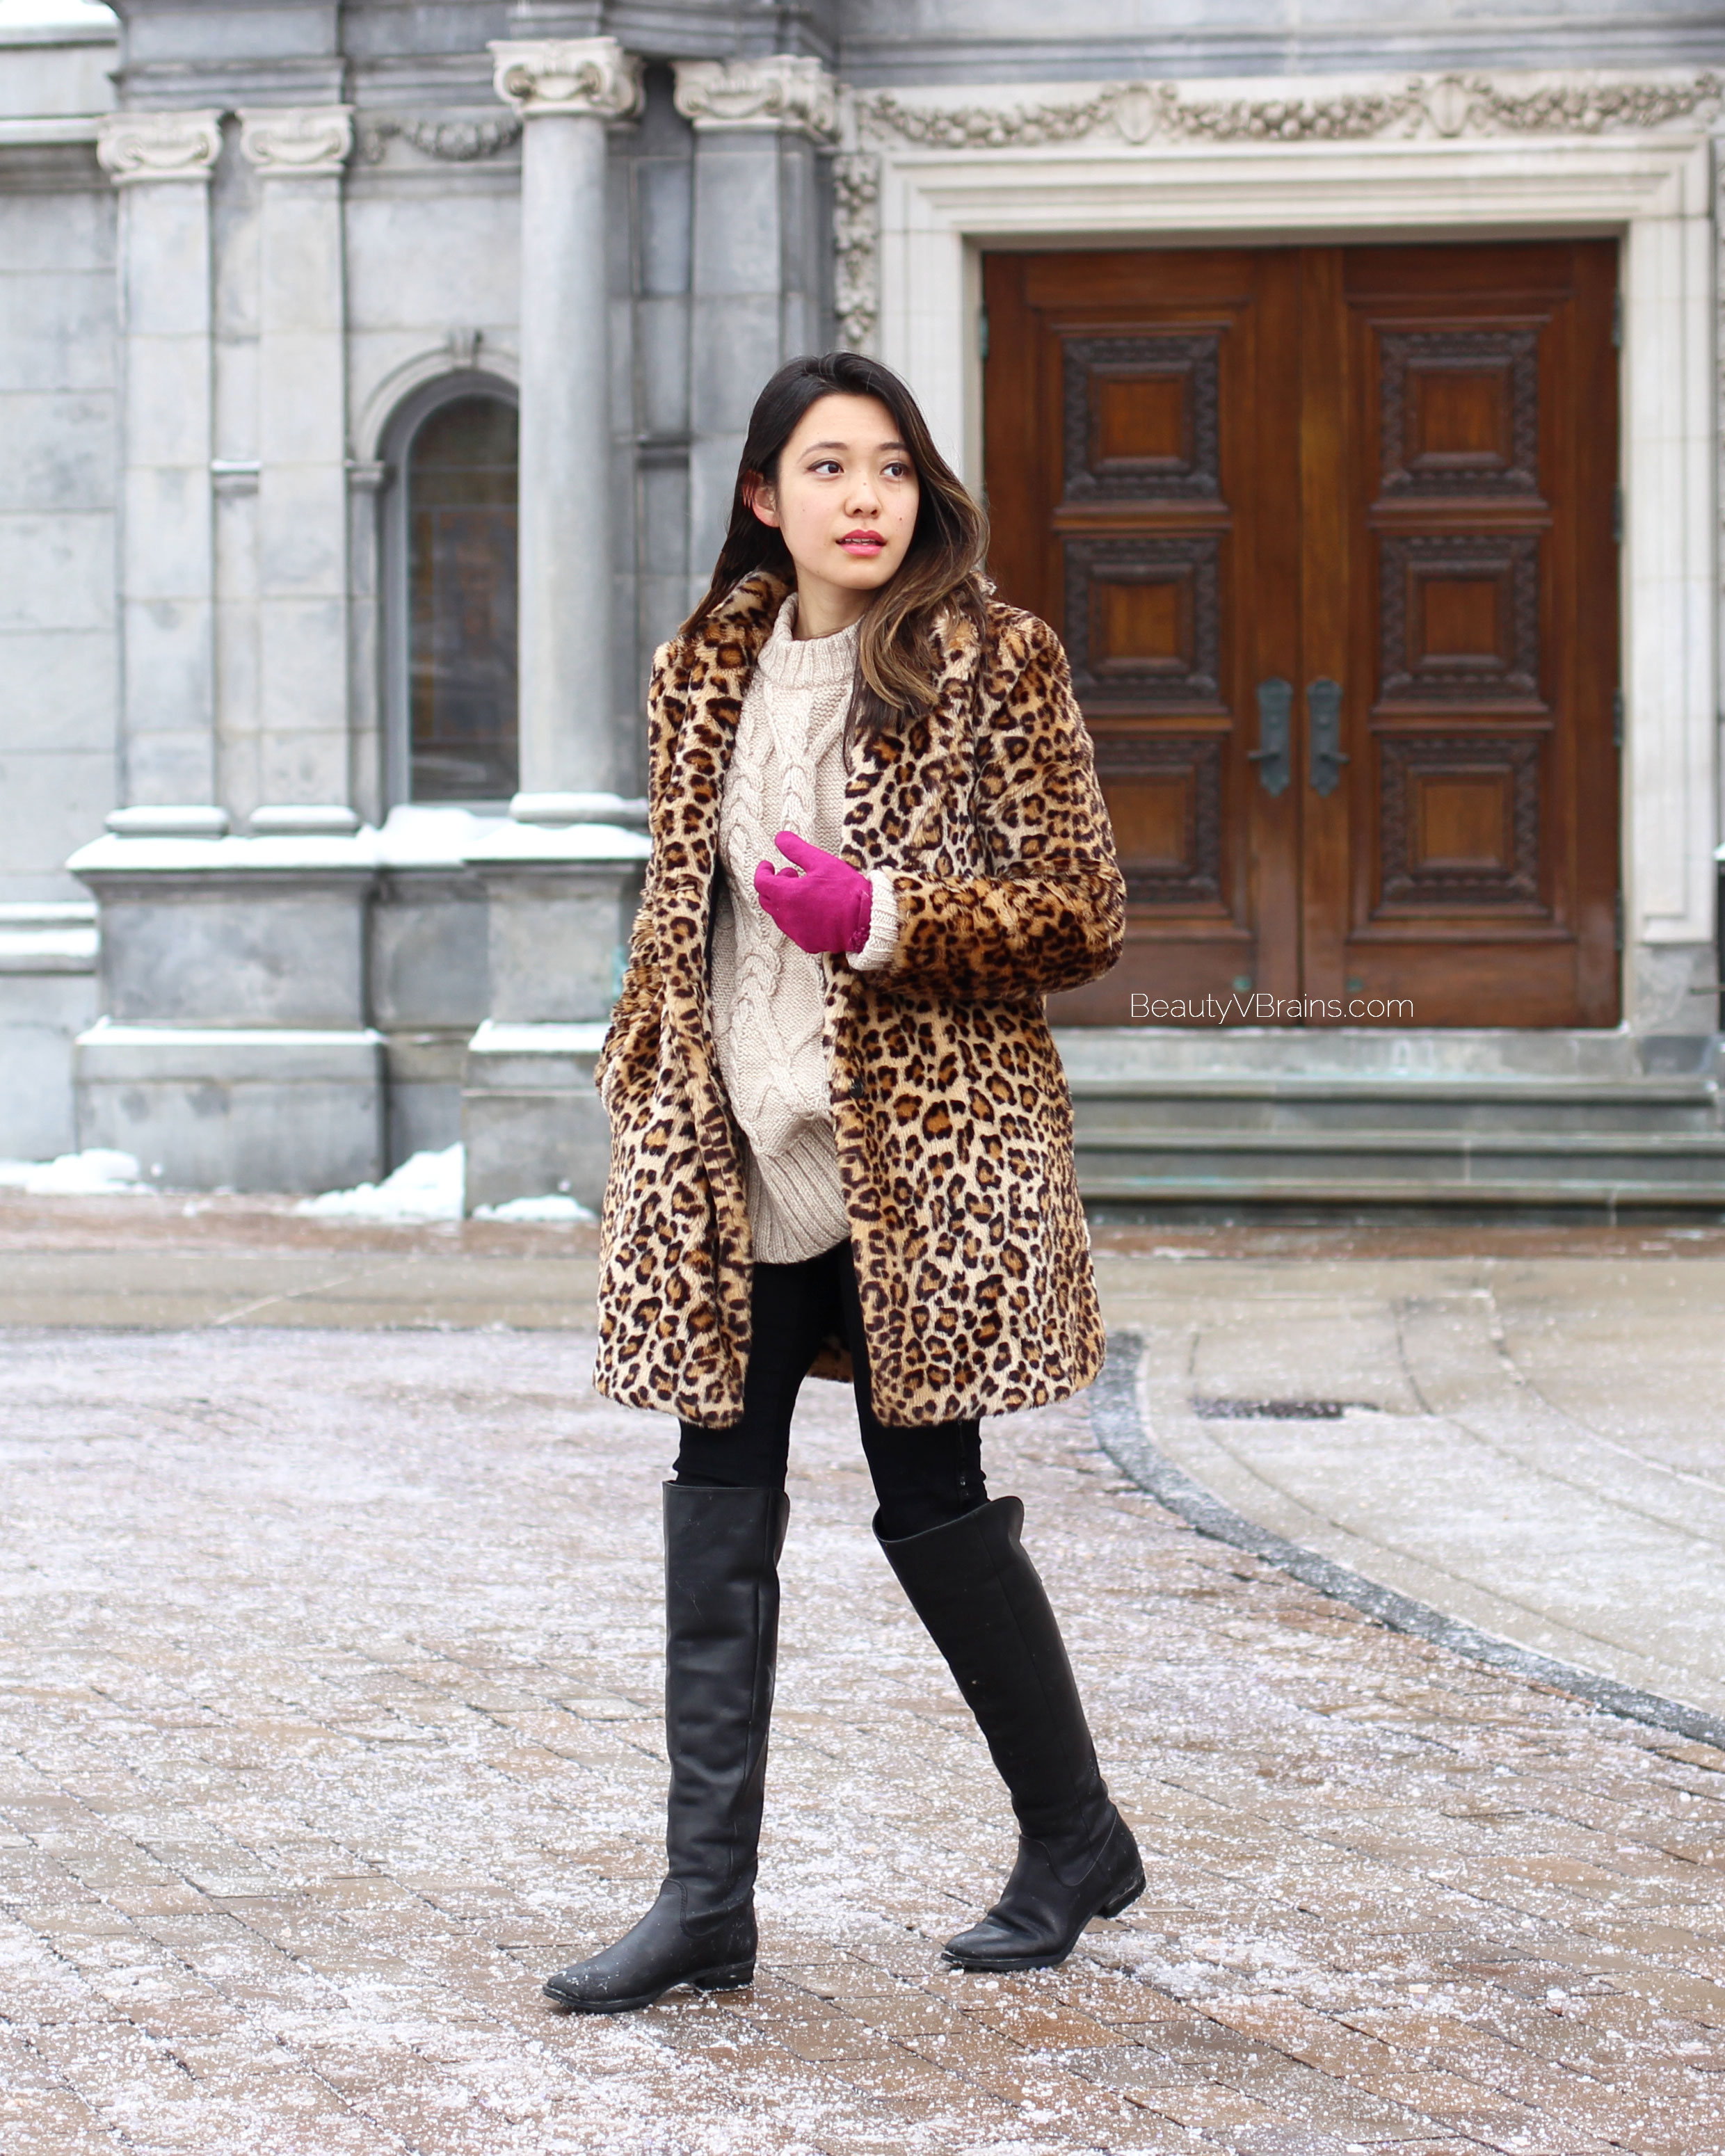 Leopard coat and black leather over the knee boots